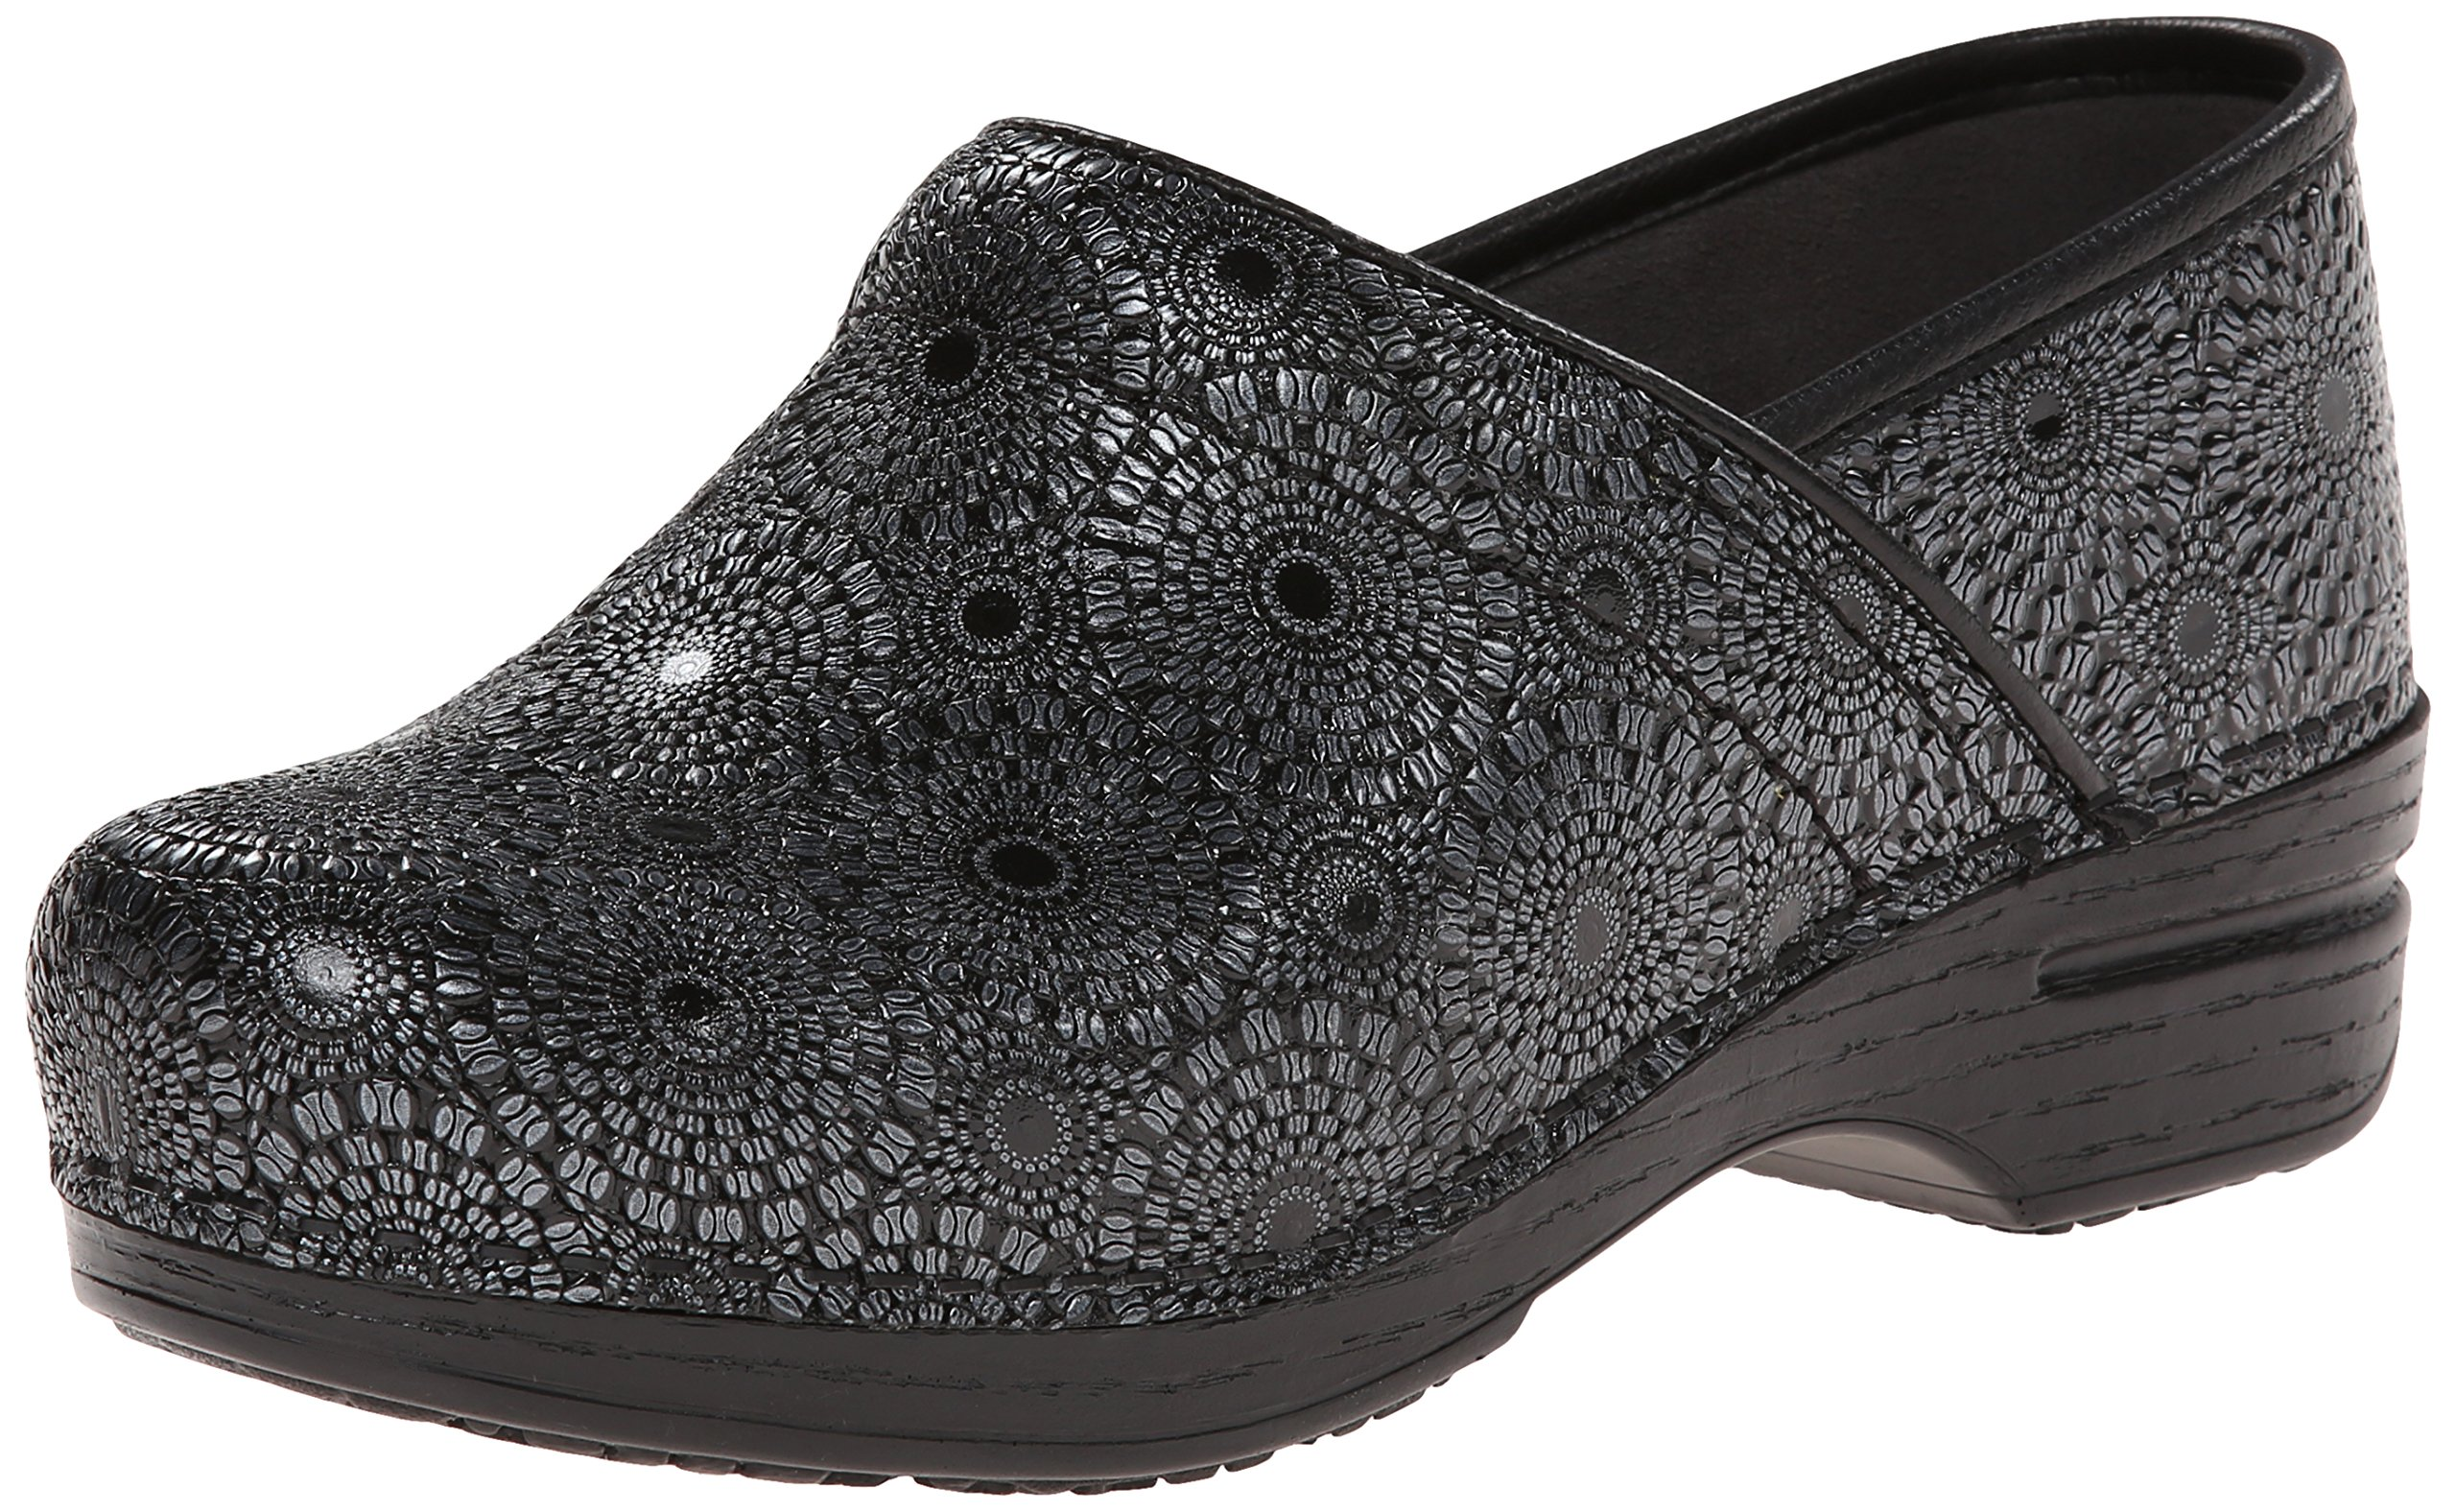 Dansko Women's Pro XP Mule, Black Medallion Patent, 40 EU/9.5-10 M US